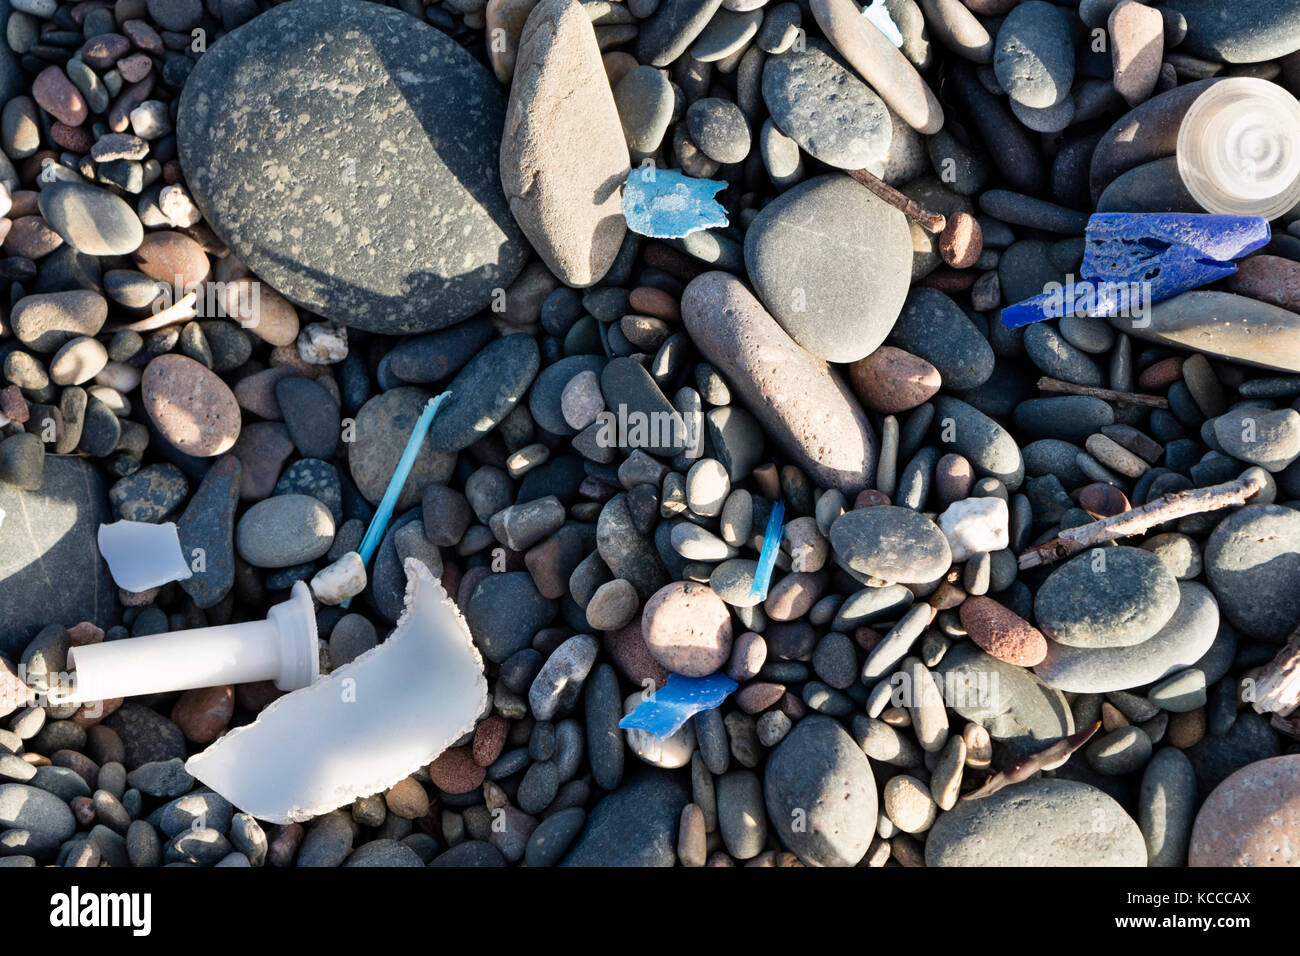 Plastic Debris Washed up on the Beach of St Bees, Cumbria, UK - Stock Image